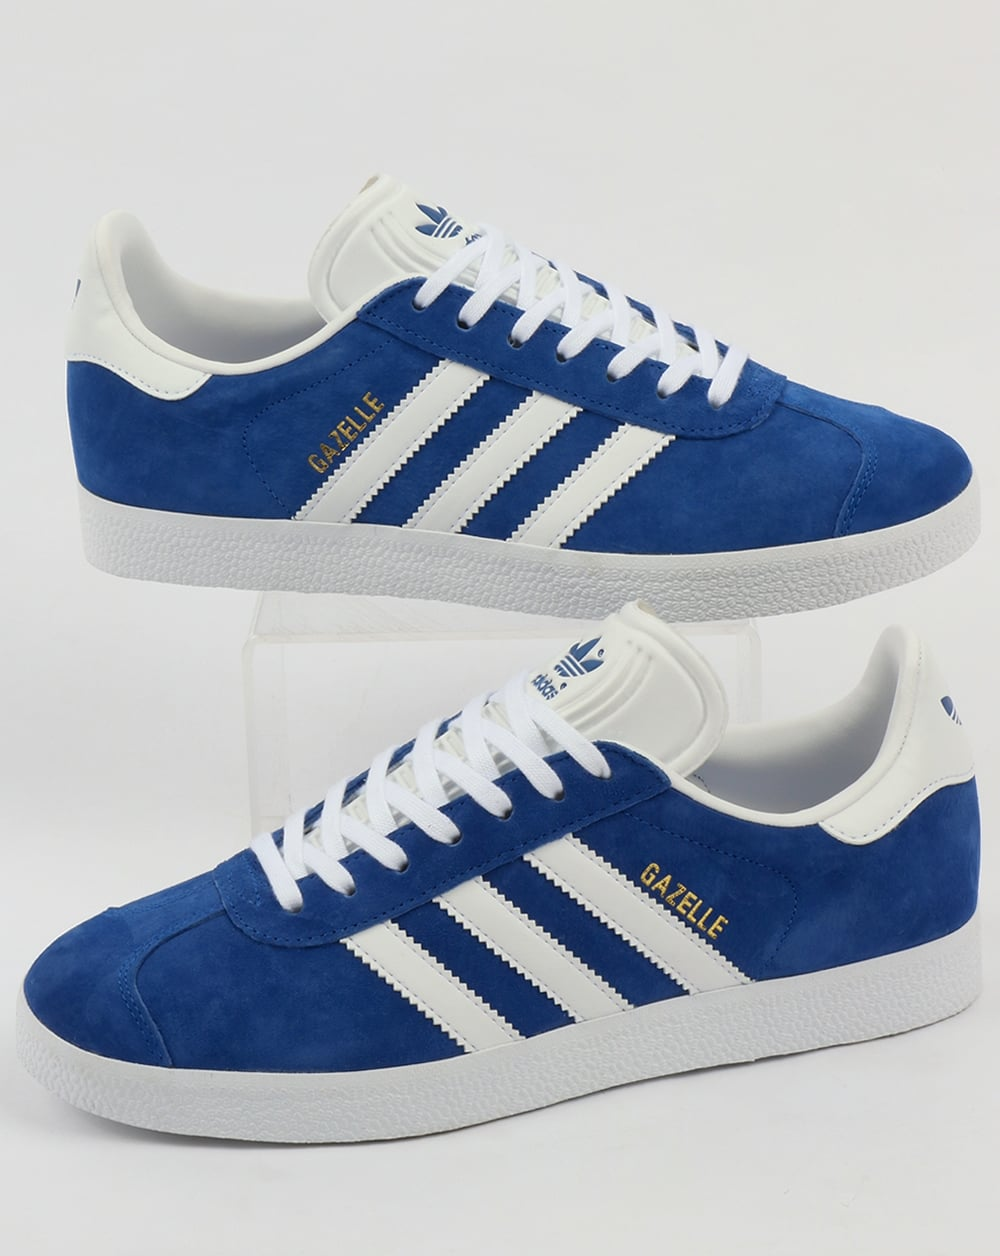 Adidas Gazelle Trainers Royal BlueWhite